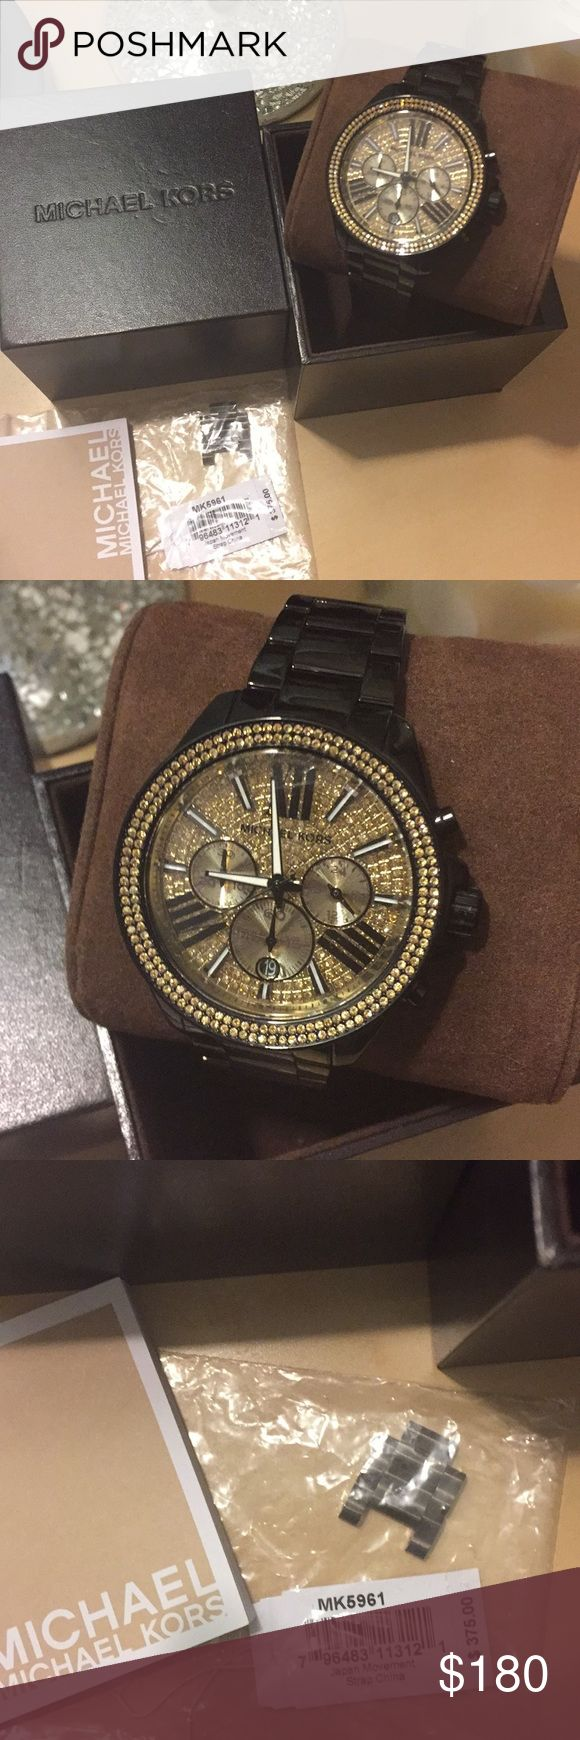 Michael Kors Wren Chronograph Glitz Watch Michael Kors • Wren, Glitz Chronograph Watch • Comes with original box and Booklet and Price tag • Need battery replaced Michael Kors Accessories Watches